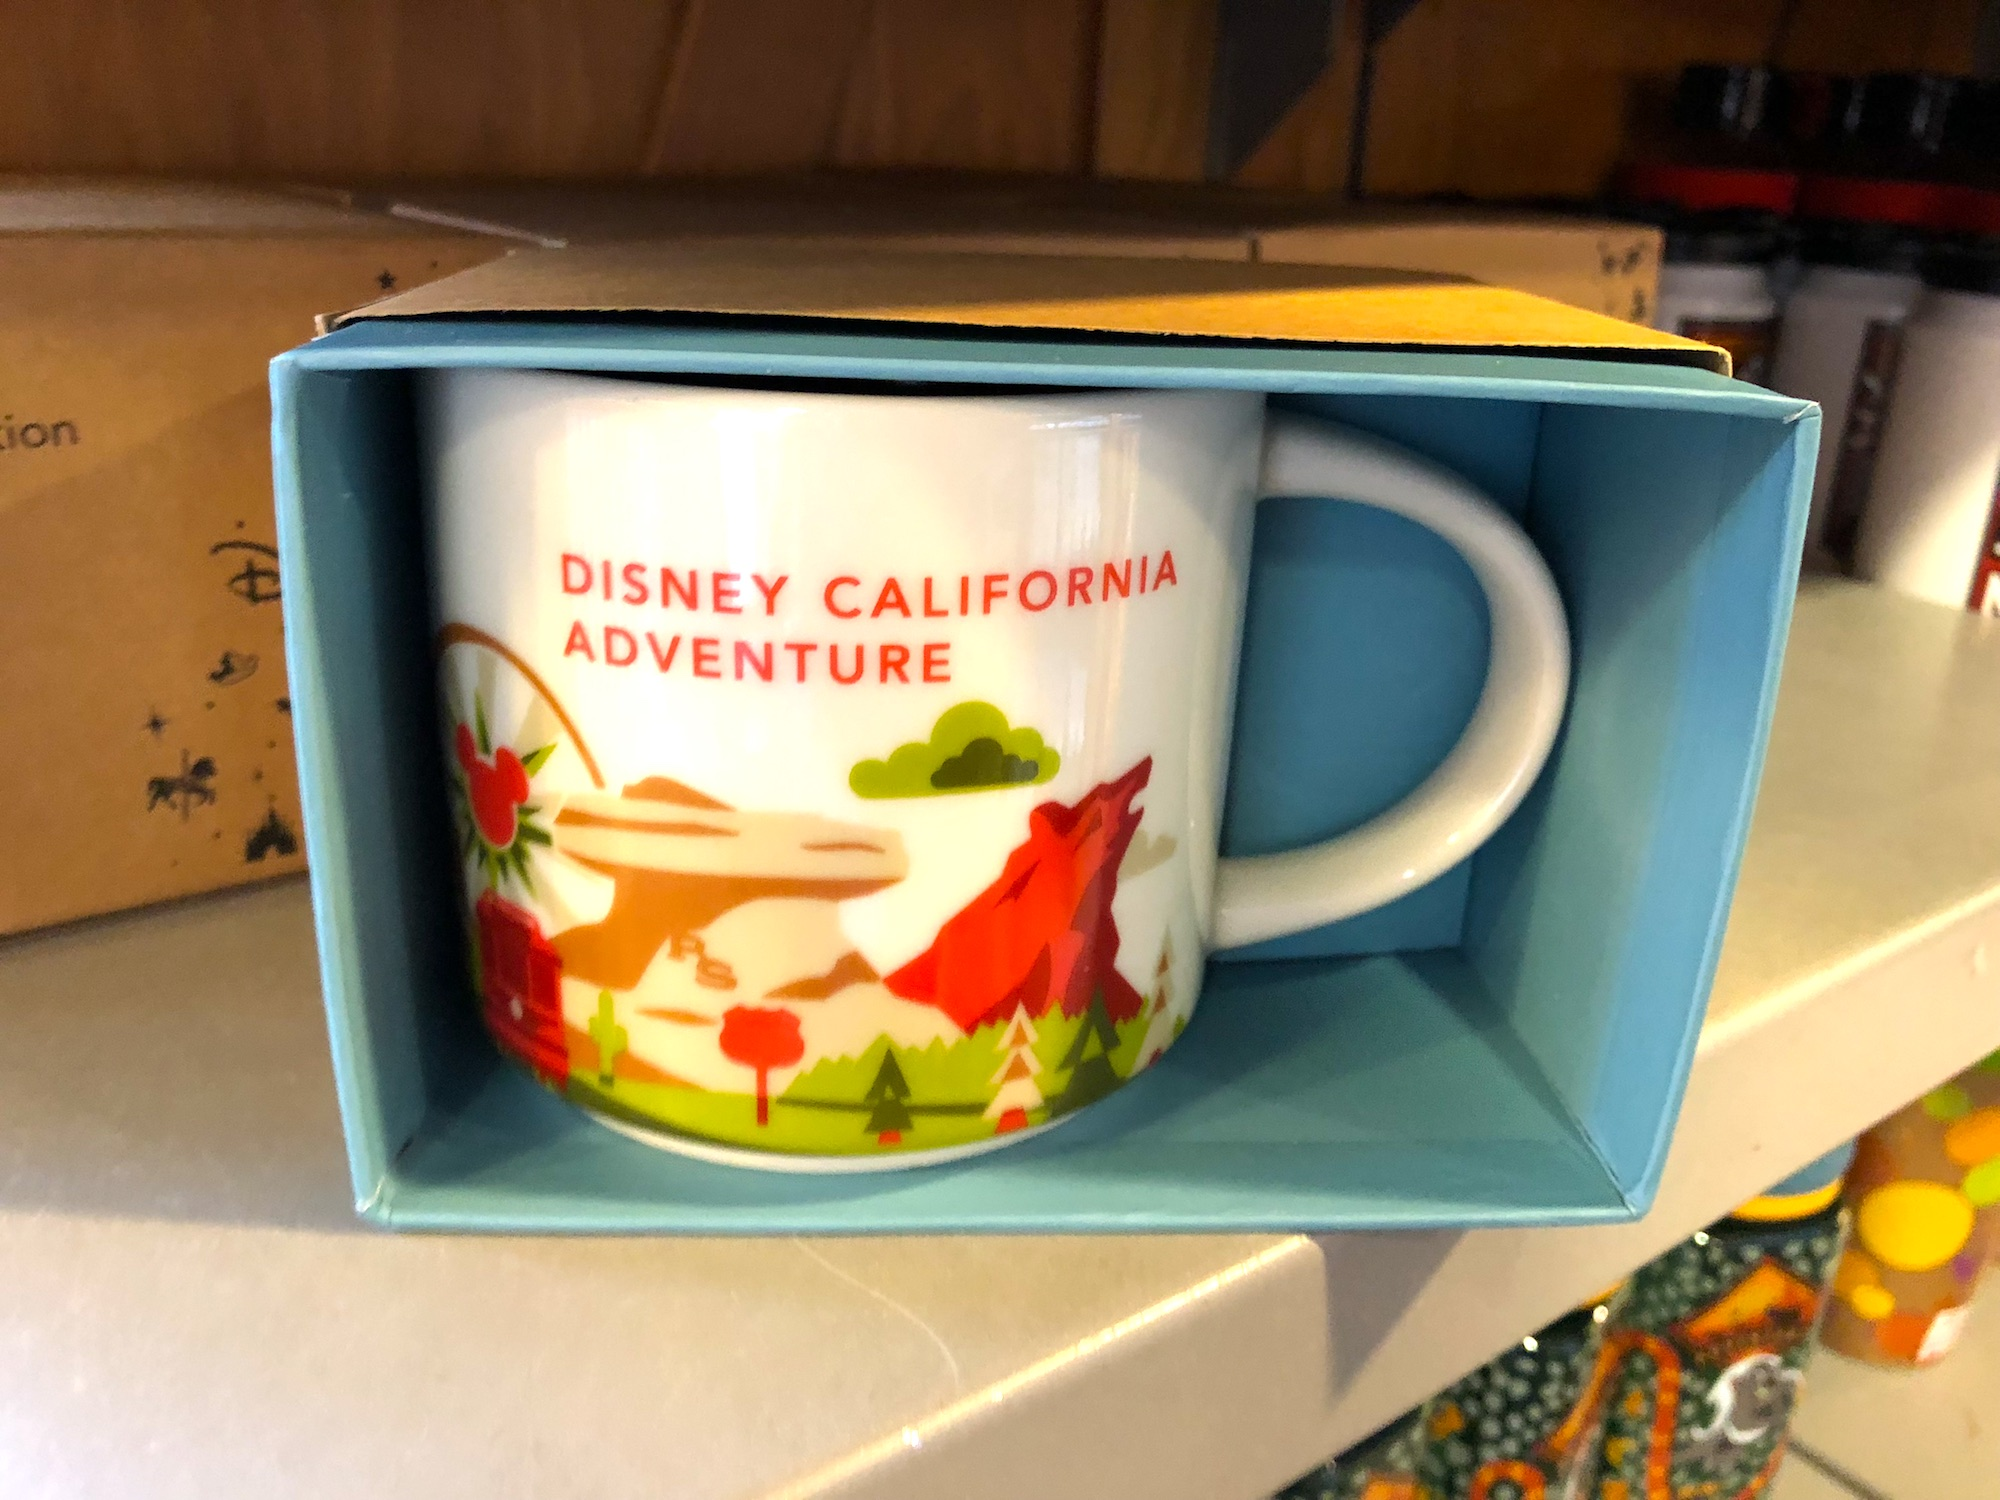 586439064f8 The Magic, The Memories, and Merch! OCTOBER 2017 Photo Report of the Disney  Outlet Store